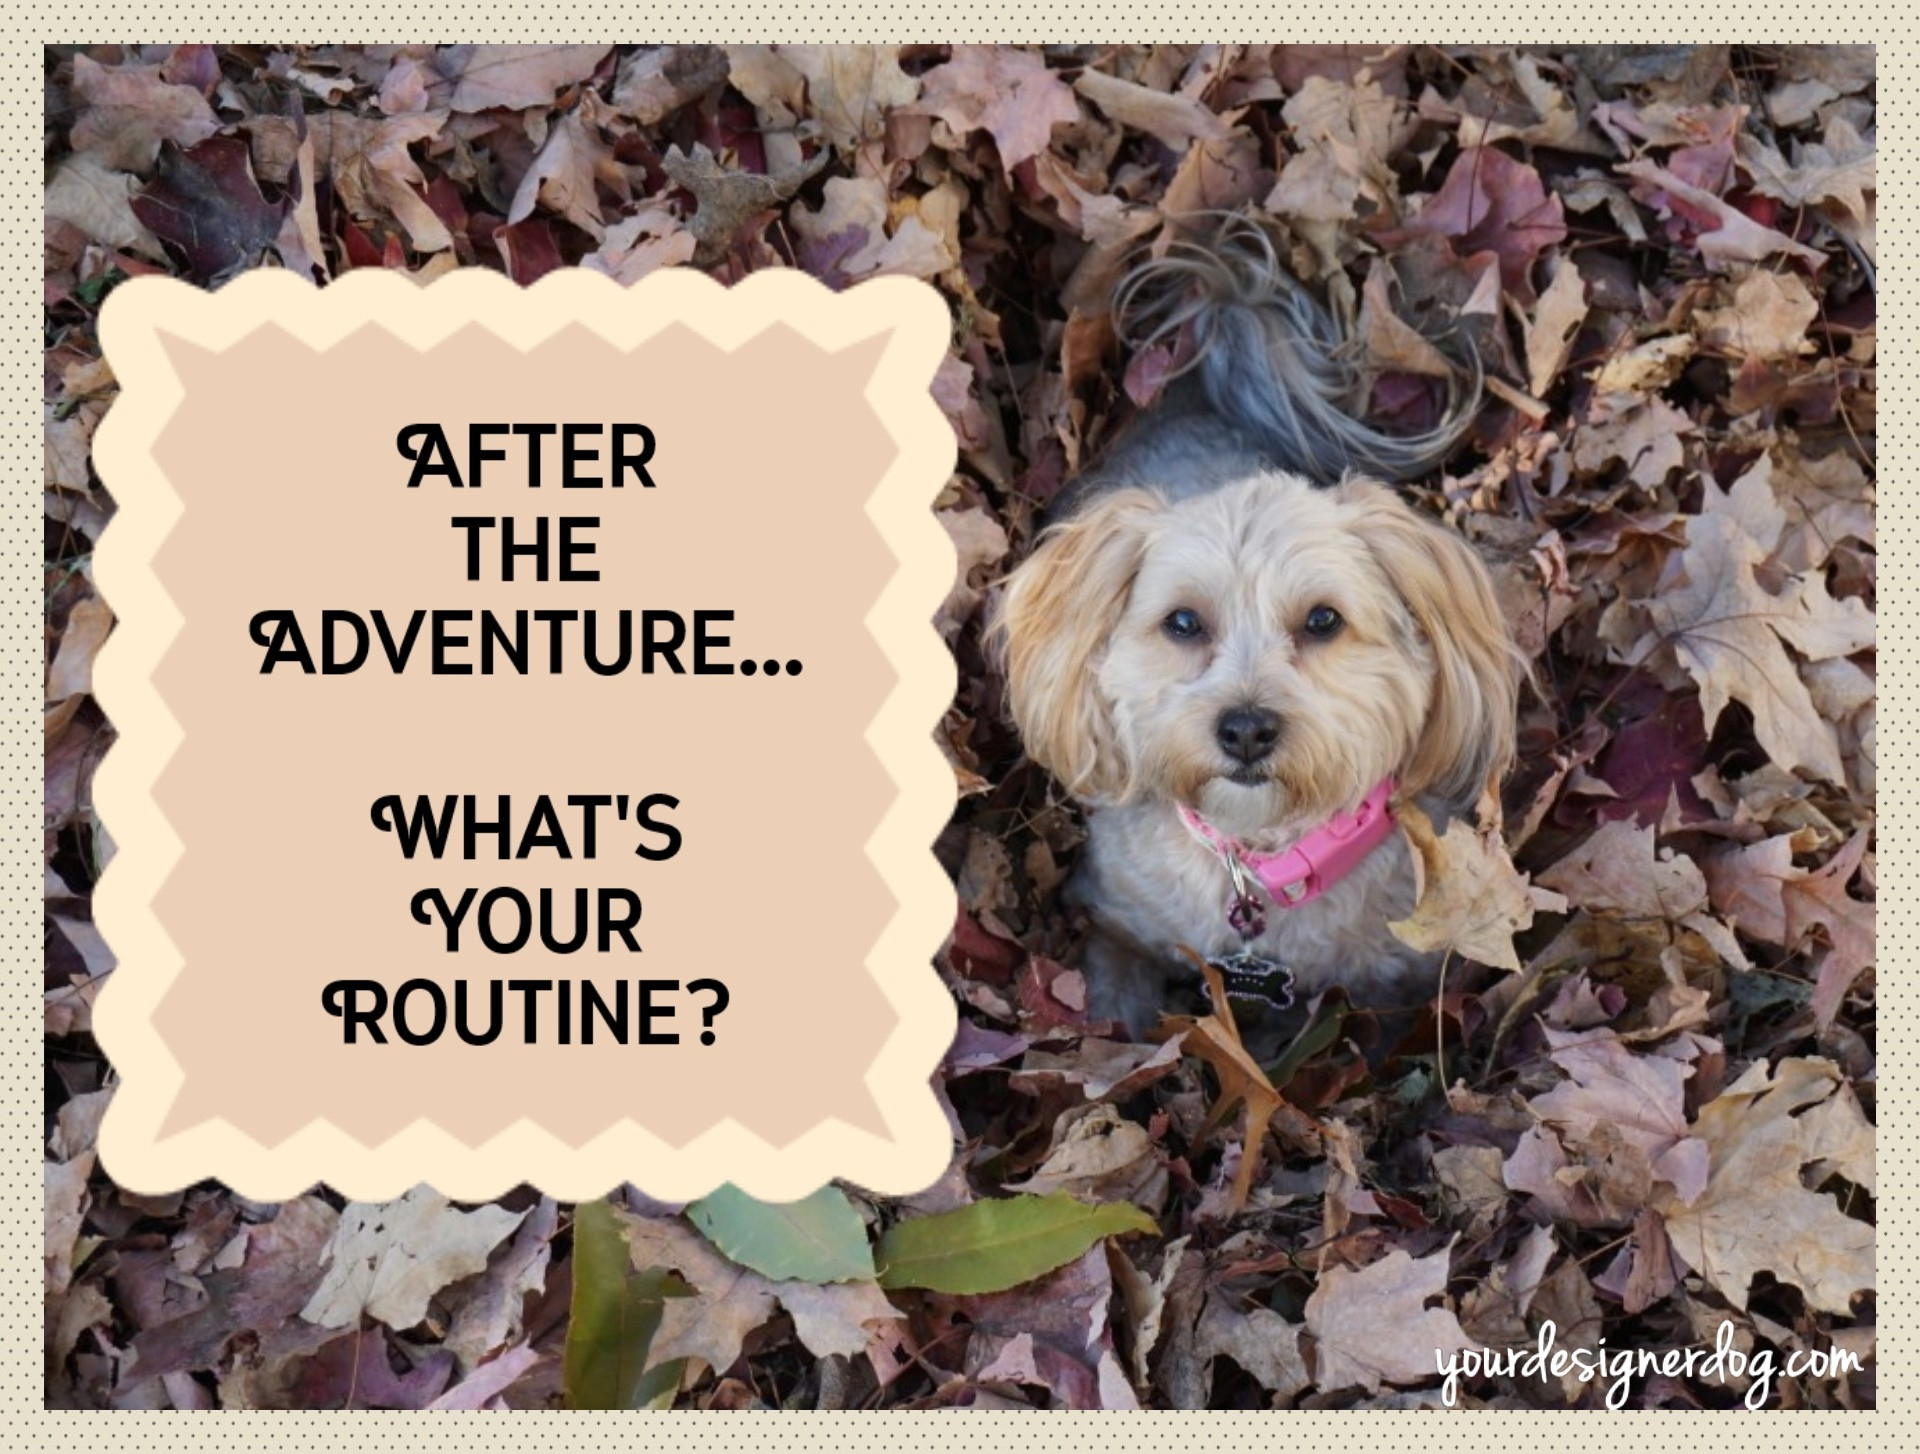 An After the Adventure Routine